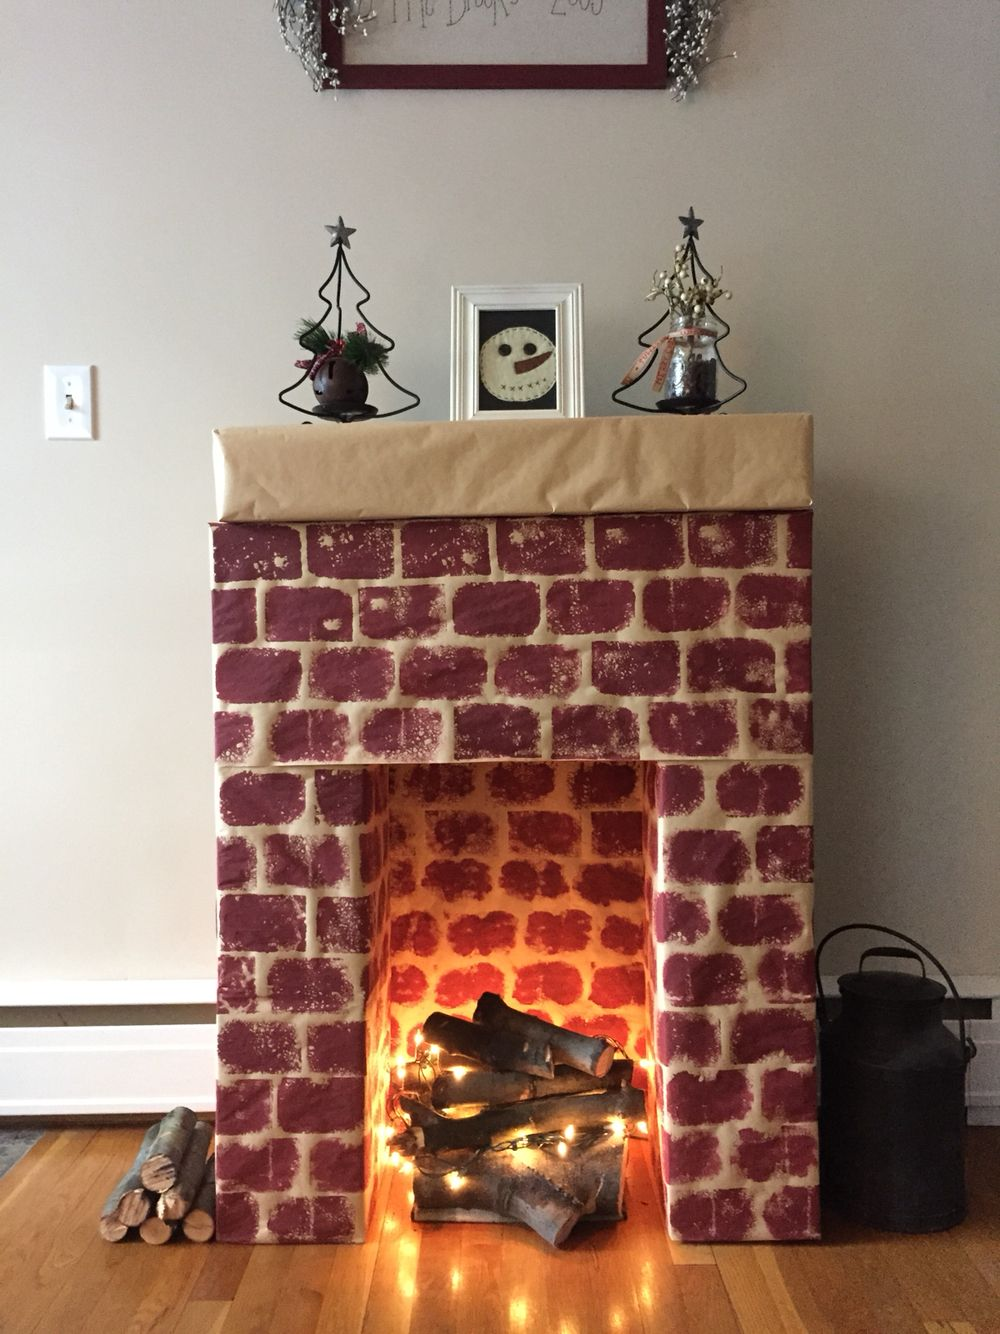 cardboard fireplace with real wood and lights as fire love